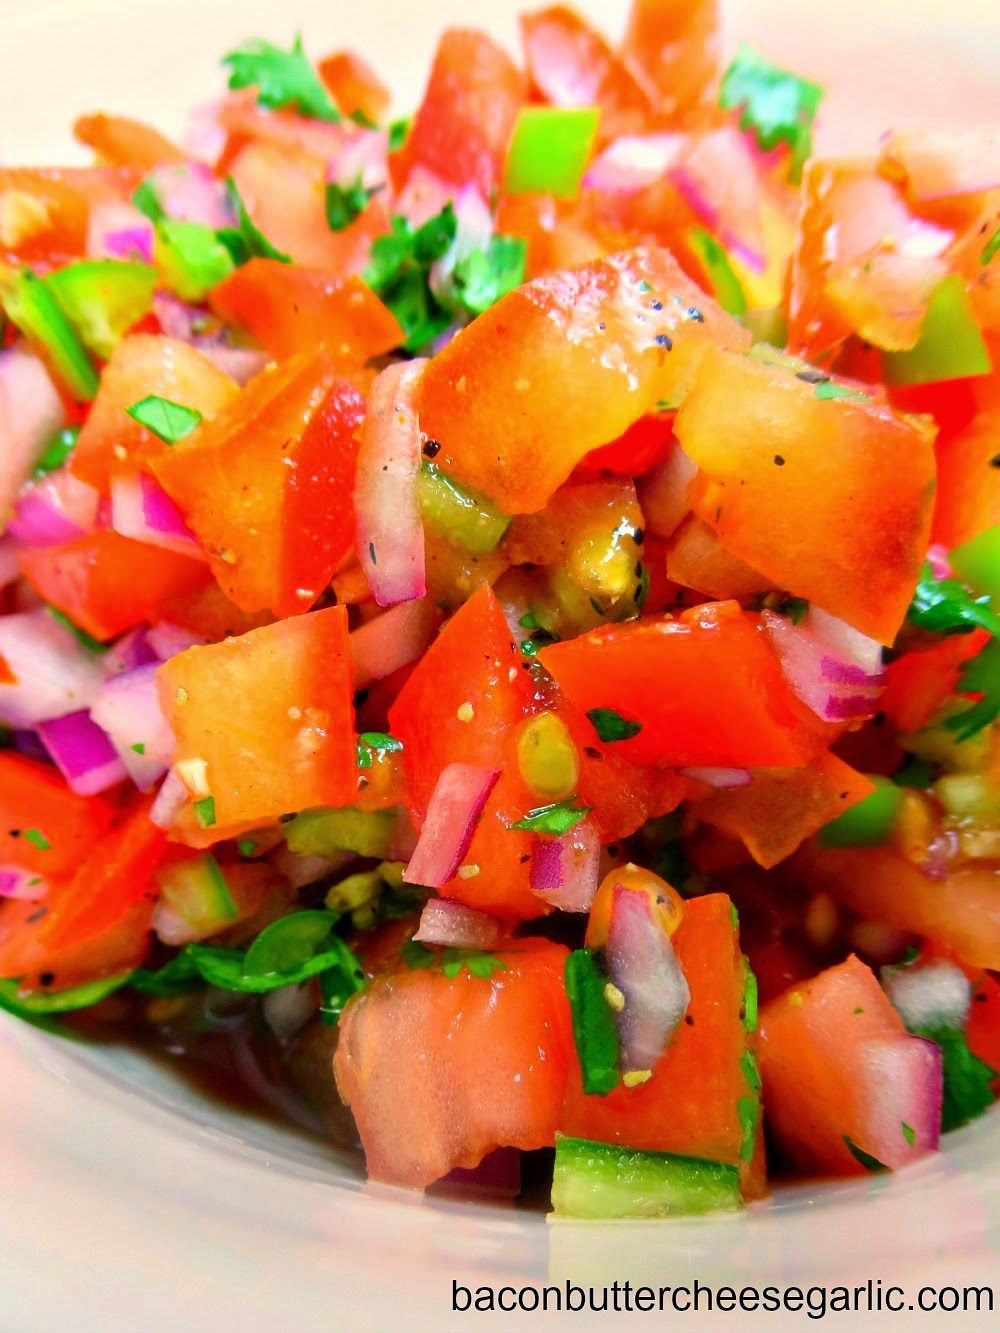 If you've never had Pico de Gallo, it's a fresh little salsa or condiment for…